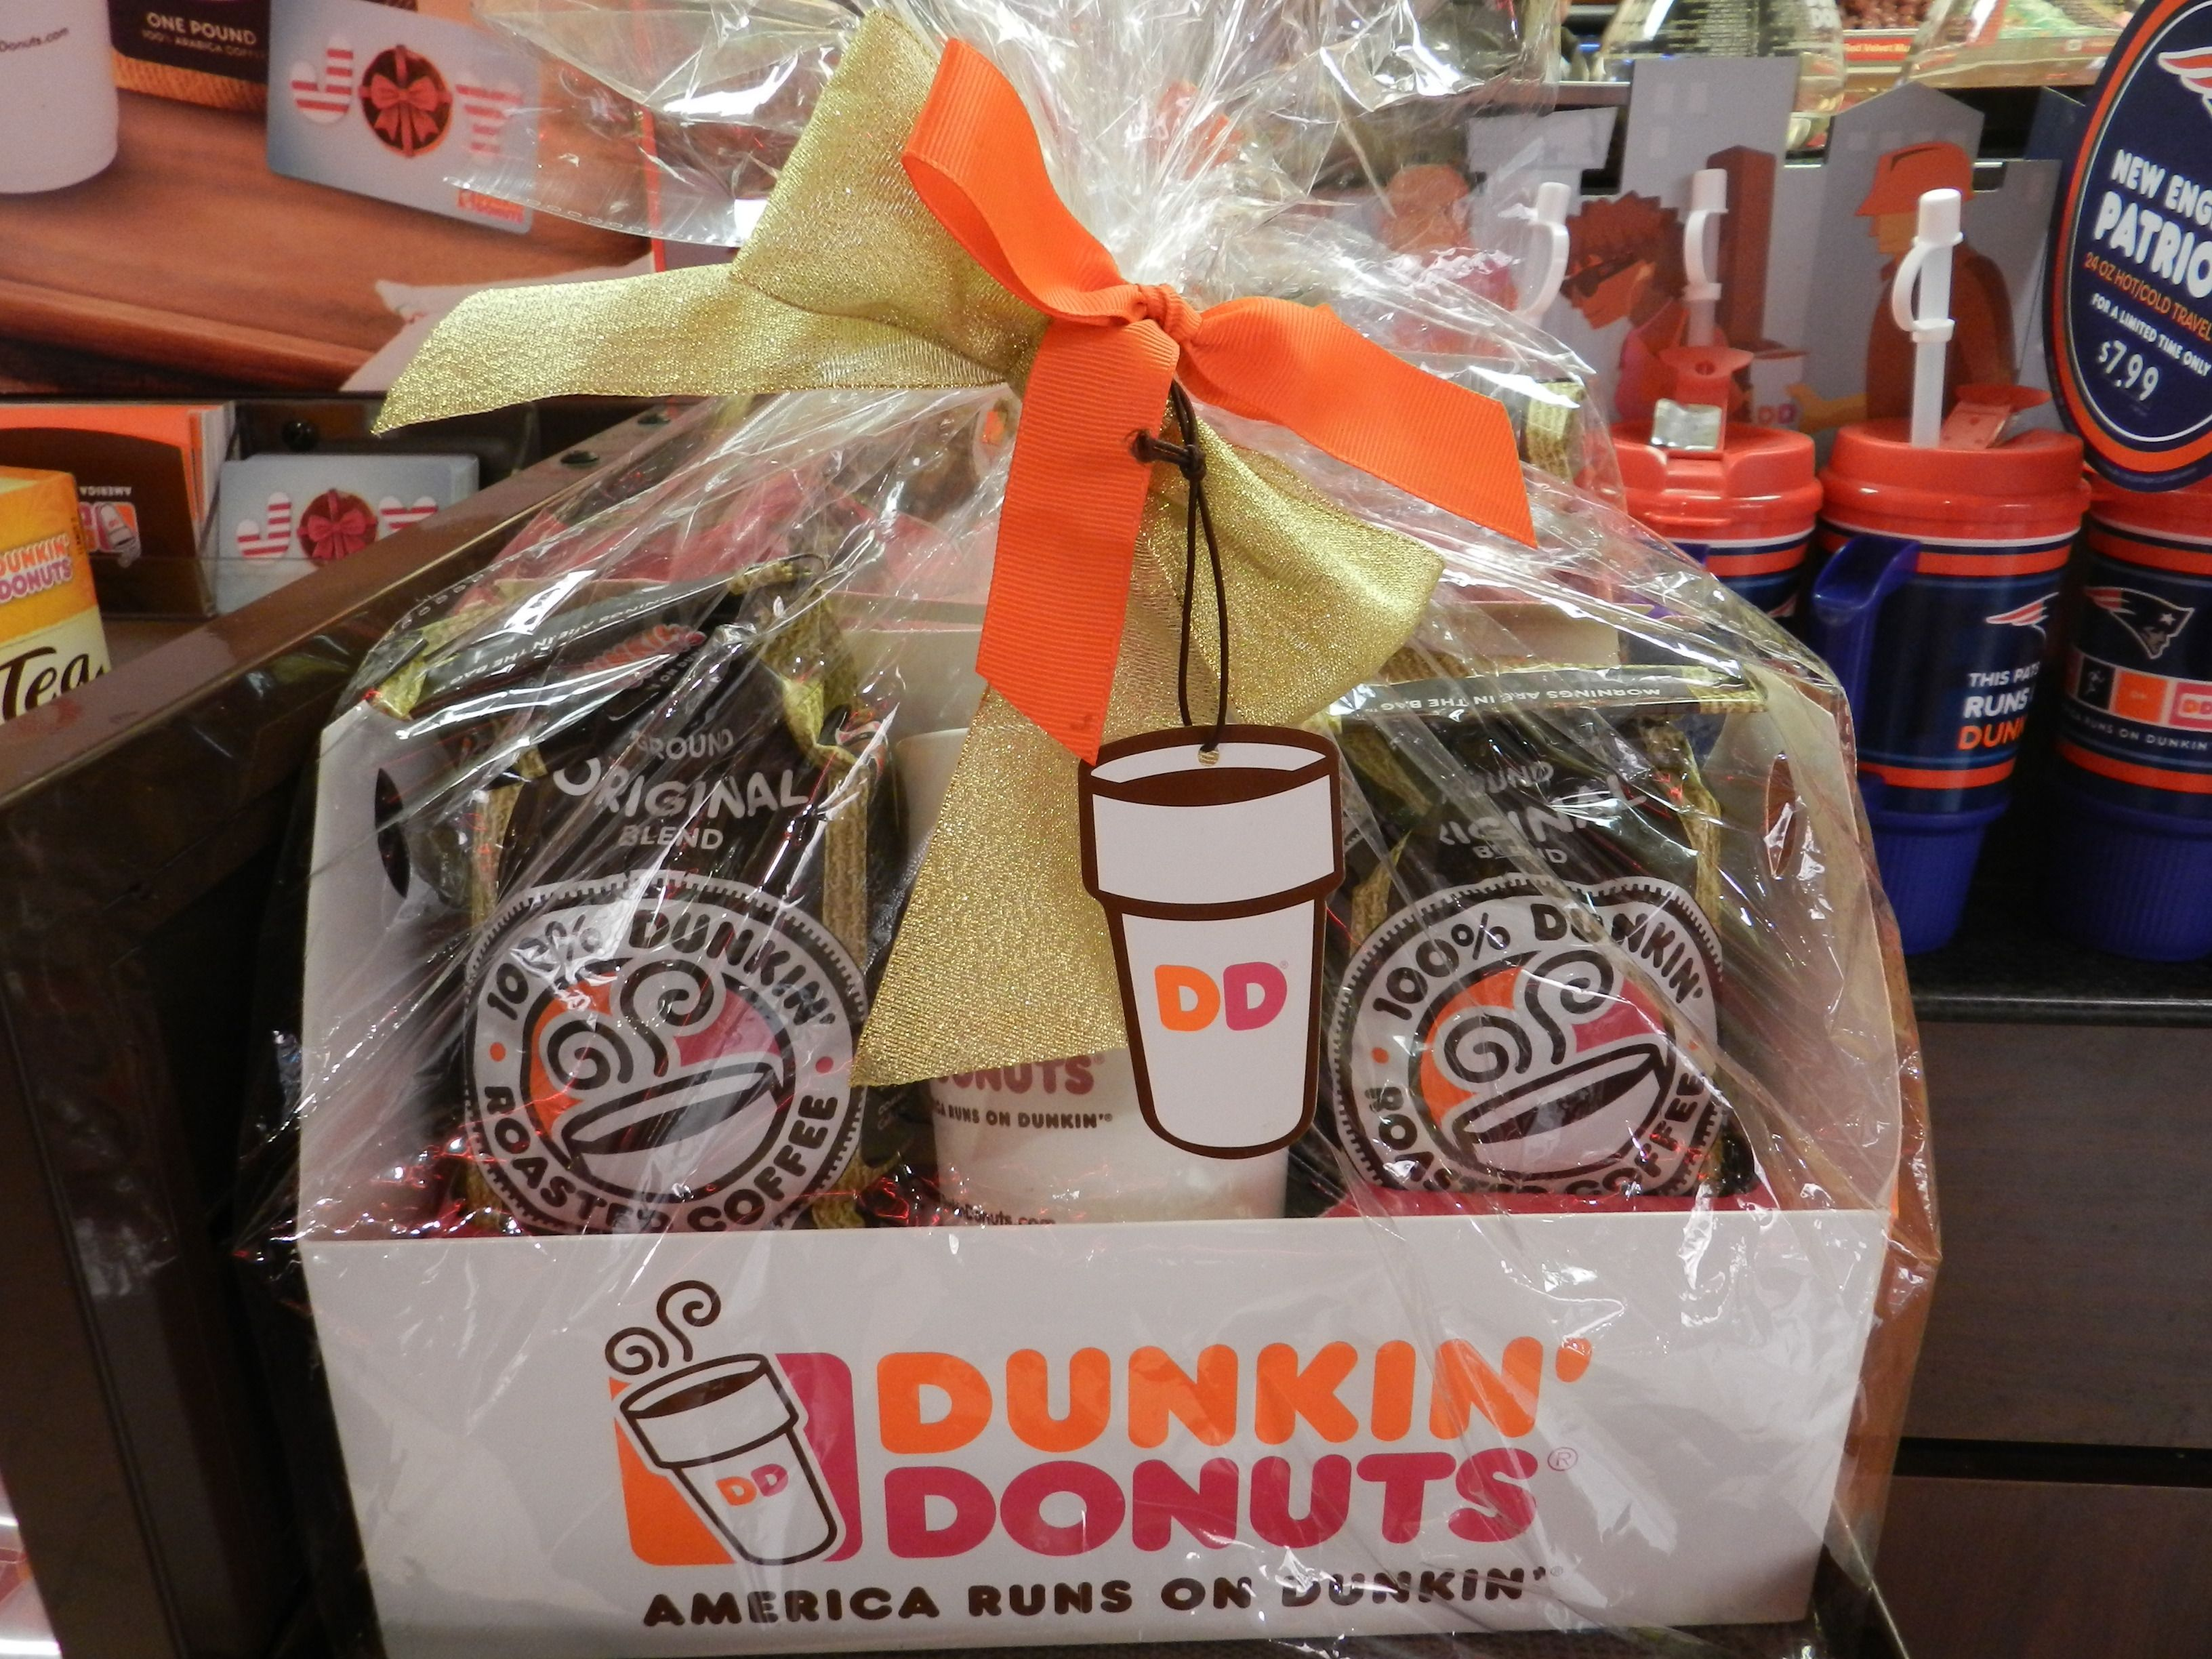 3 lbs of coffee in a cute gift basket from dunkin donuts are on sale at